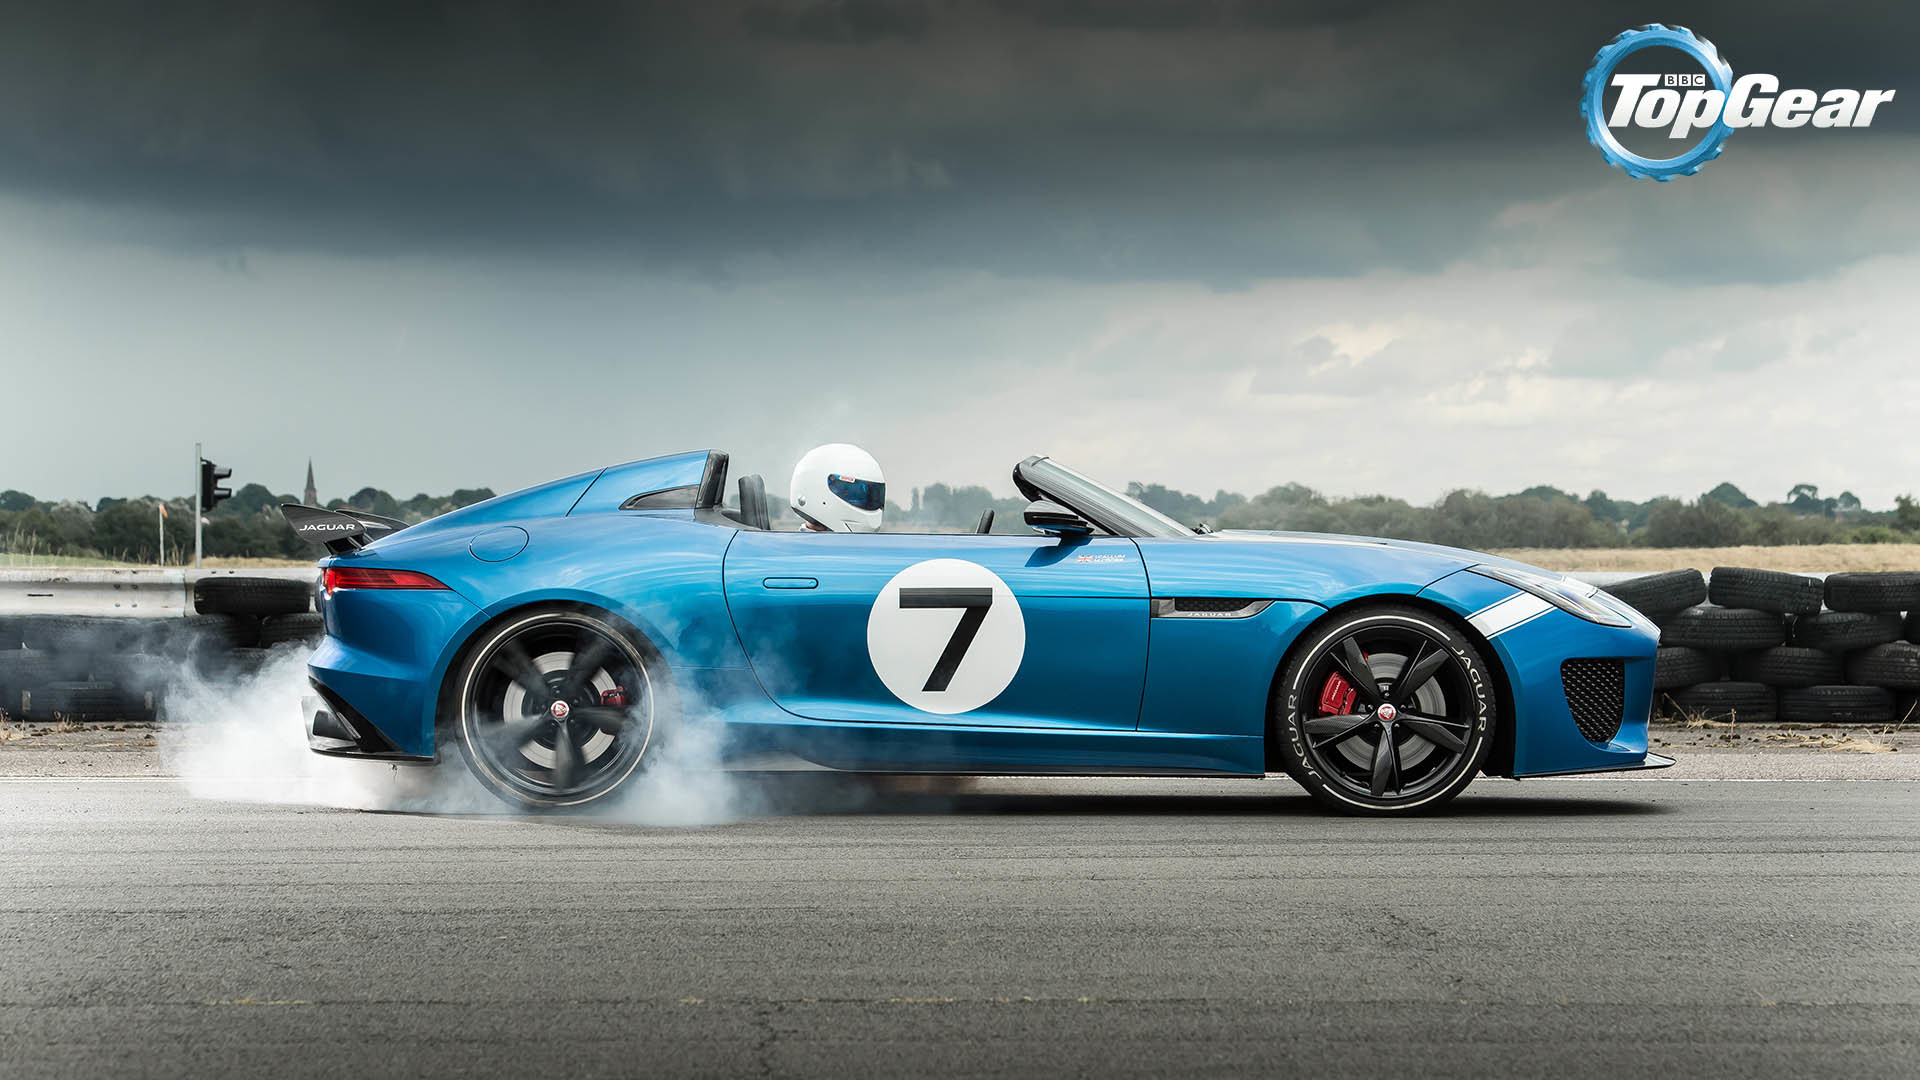 1920x1080 The Stig Drives Jaguar Project 7 Wallpaper - Image #3561 -